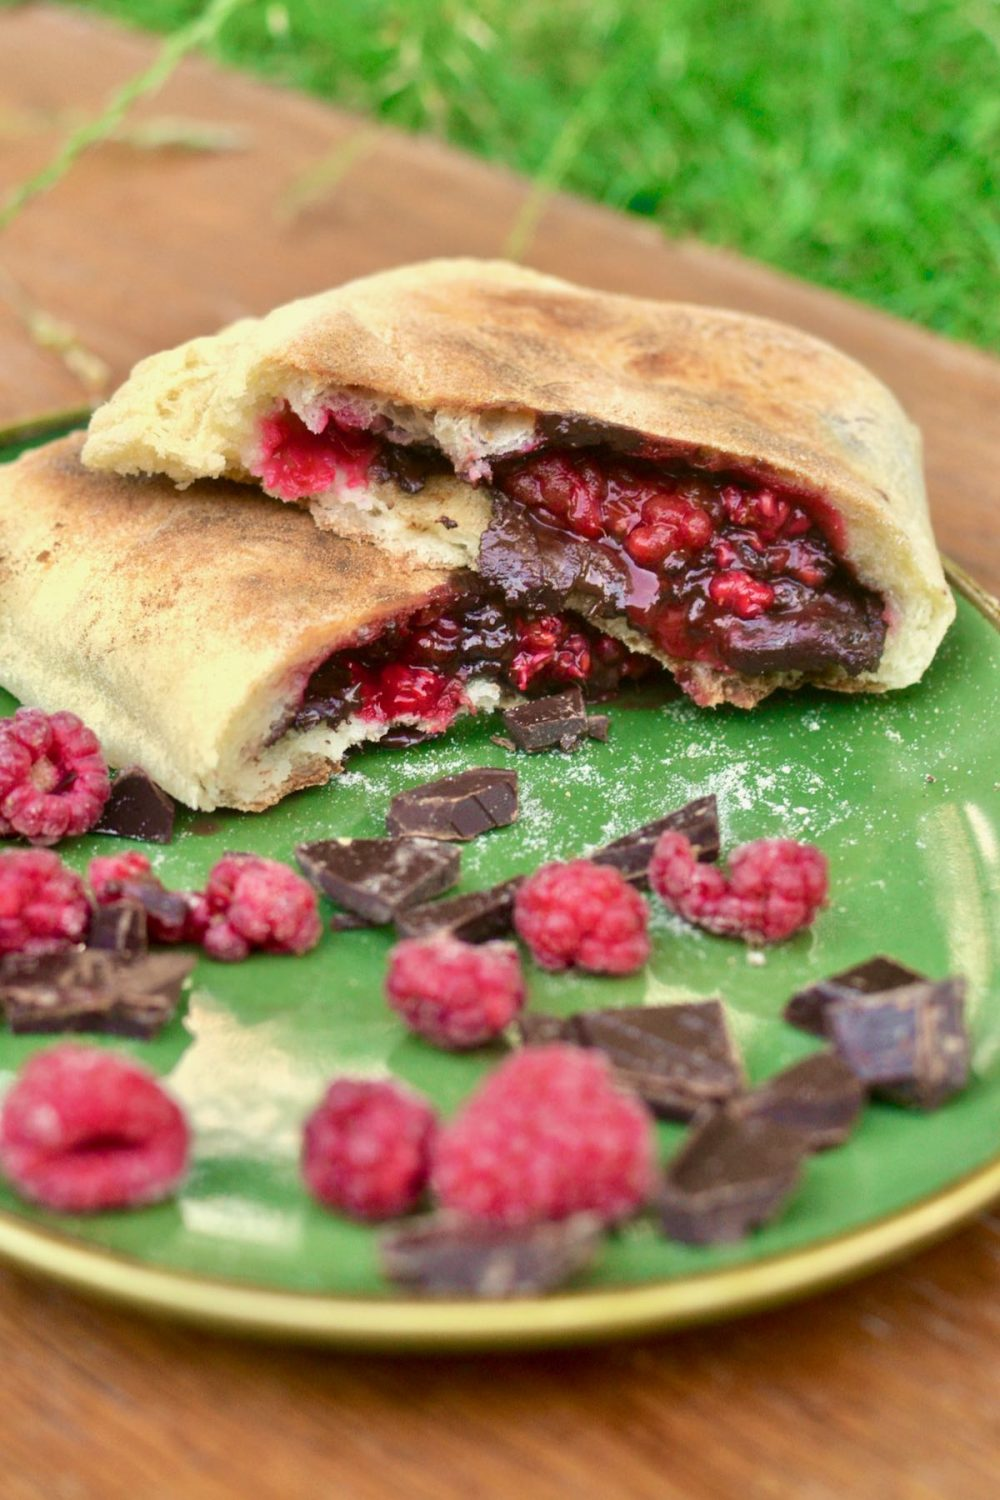 A cooked calzone showing its filling of raspberries and now melted chocolate.